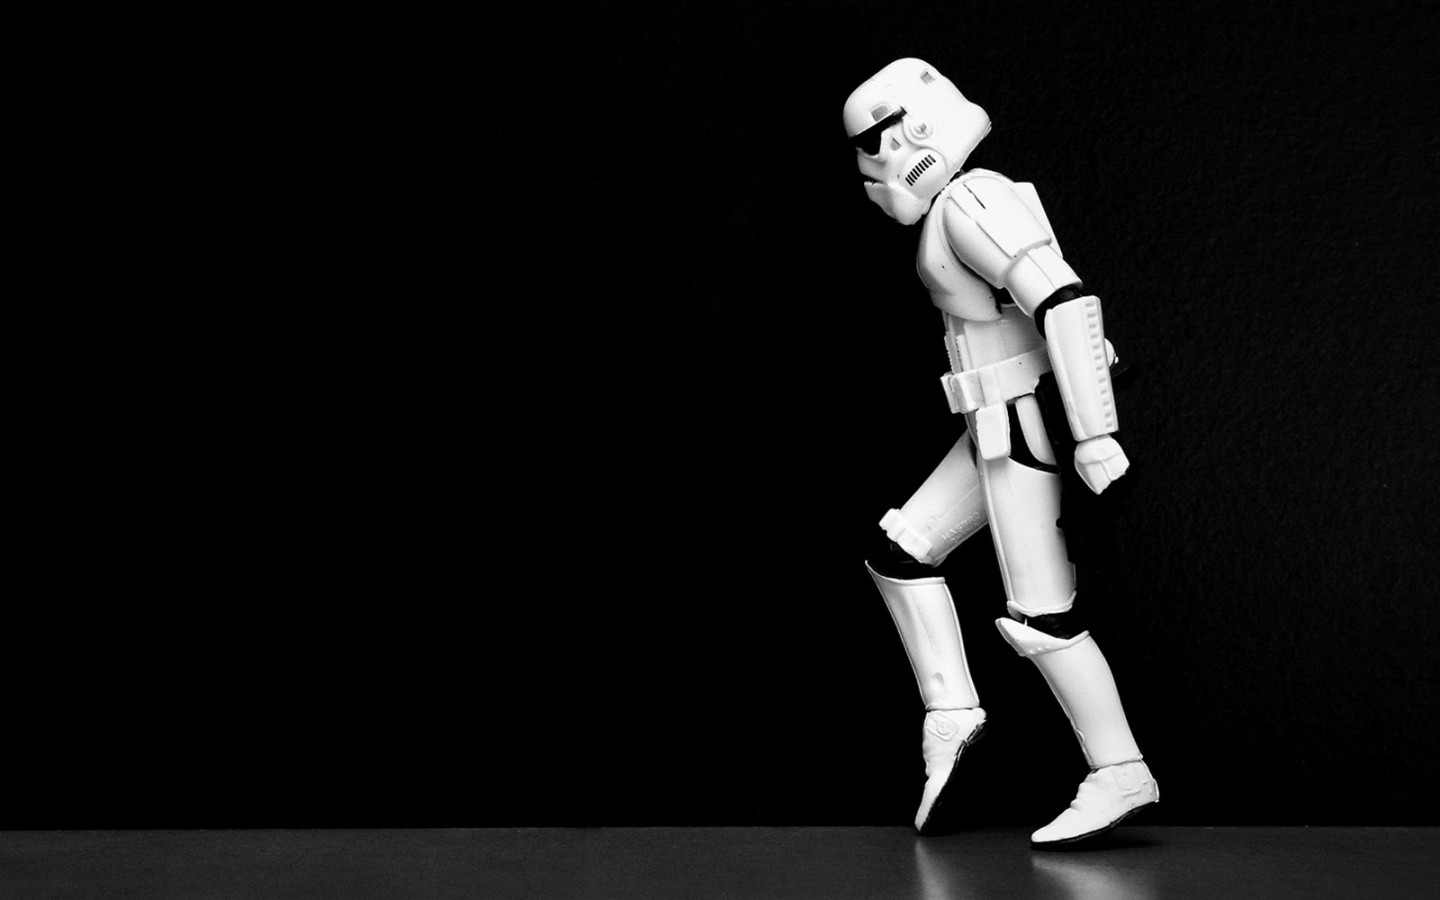 Moonwalking Stormtrooper